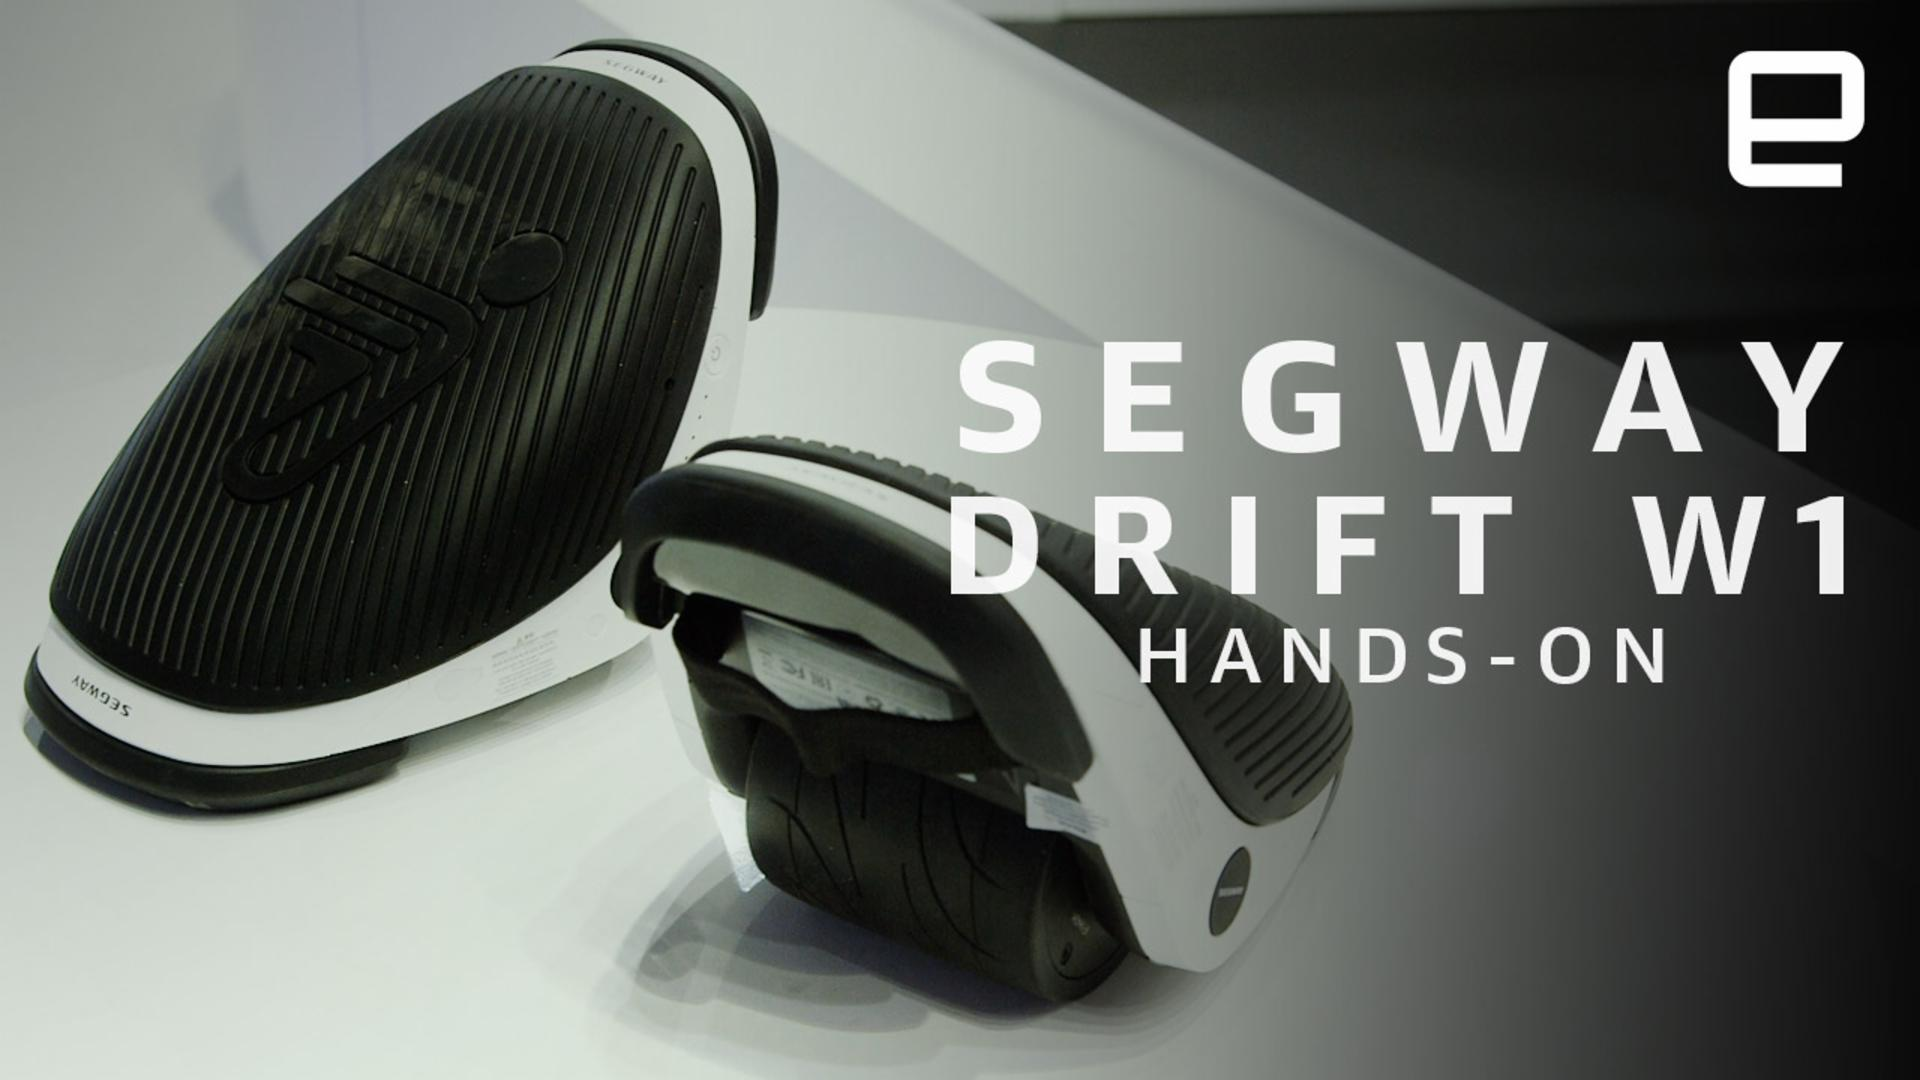 Segway's Drift e-skates aren't nearly as dangerous as they look